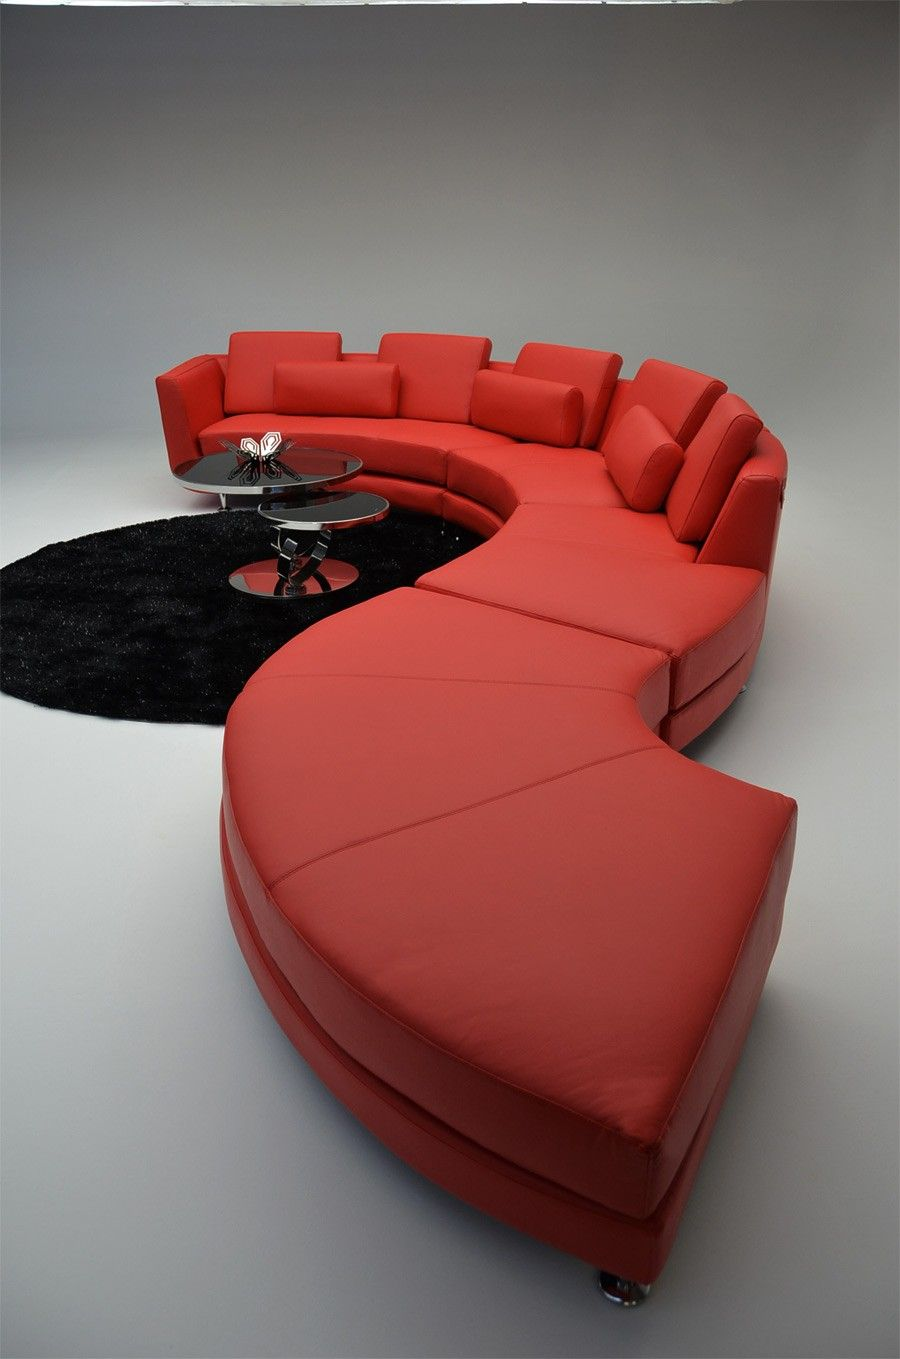 A94 Contemporary Red Leather Sectional Sofa Red Leather